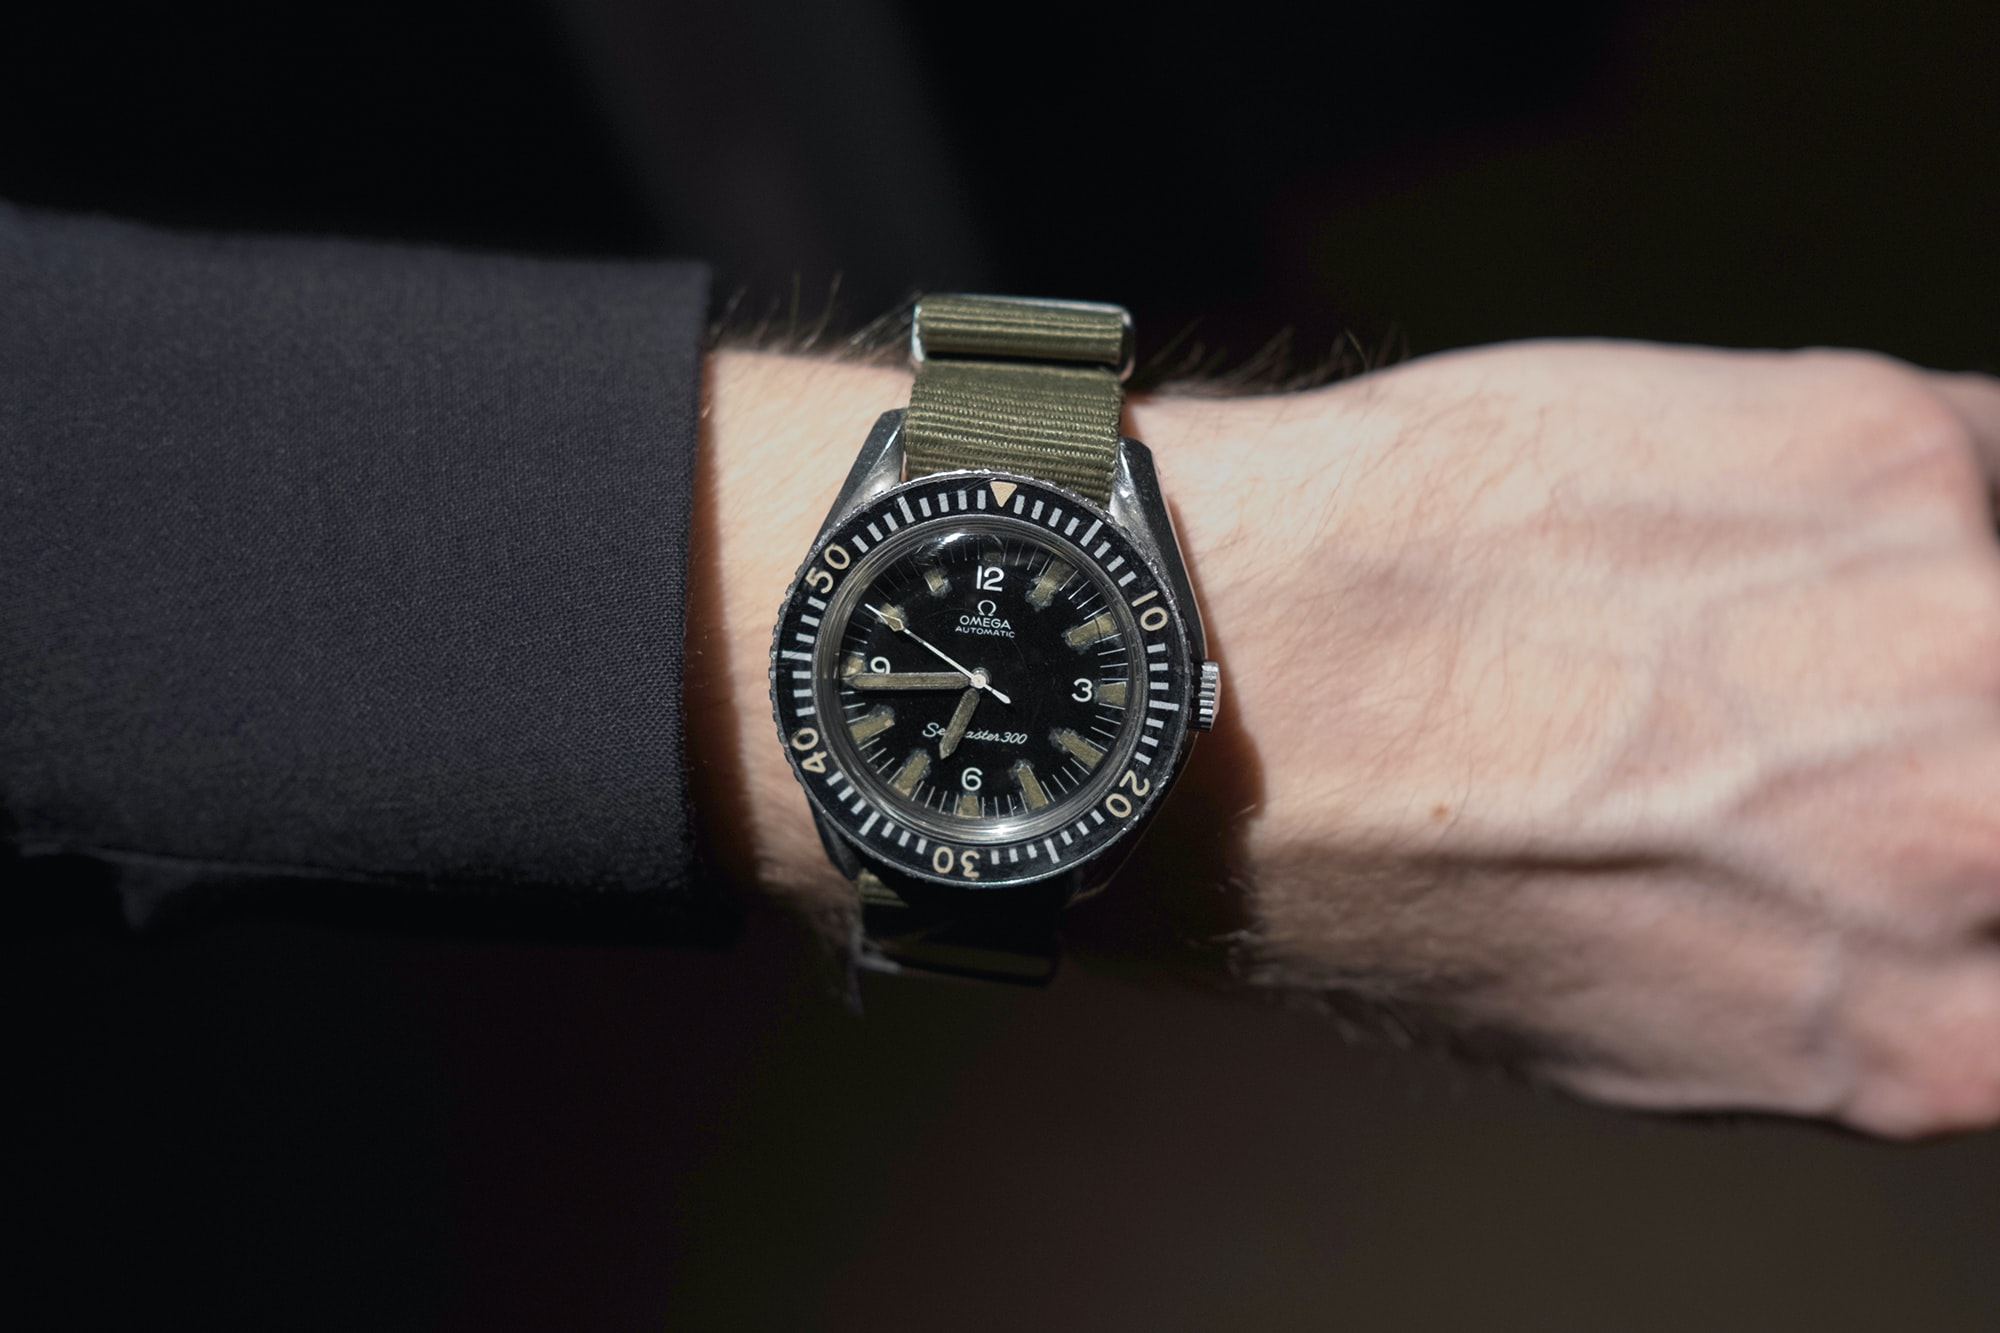 Photo Report: Watch Spotting At The HODINKEE Meet-Up In London (Plus Our Holiday 2016 Pop-Up At Harrods) Photo Report: Watch Spotting At The HODINKEE Meet-Up In London (Plus Our Holiday 2016 Pop-Up At Harrods) Hodinkee event 29 nov 2016 16